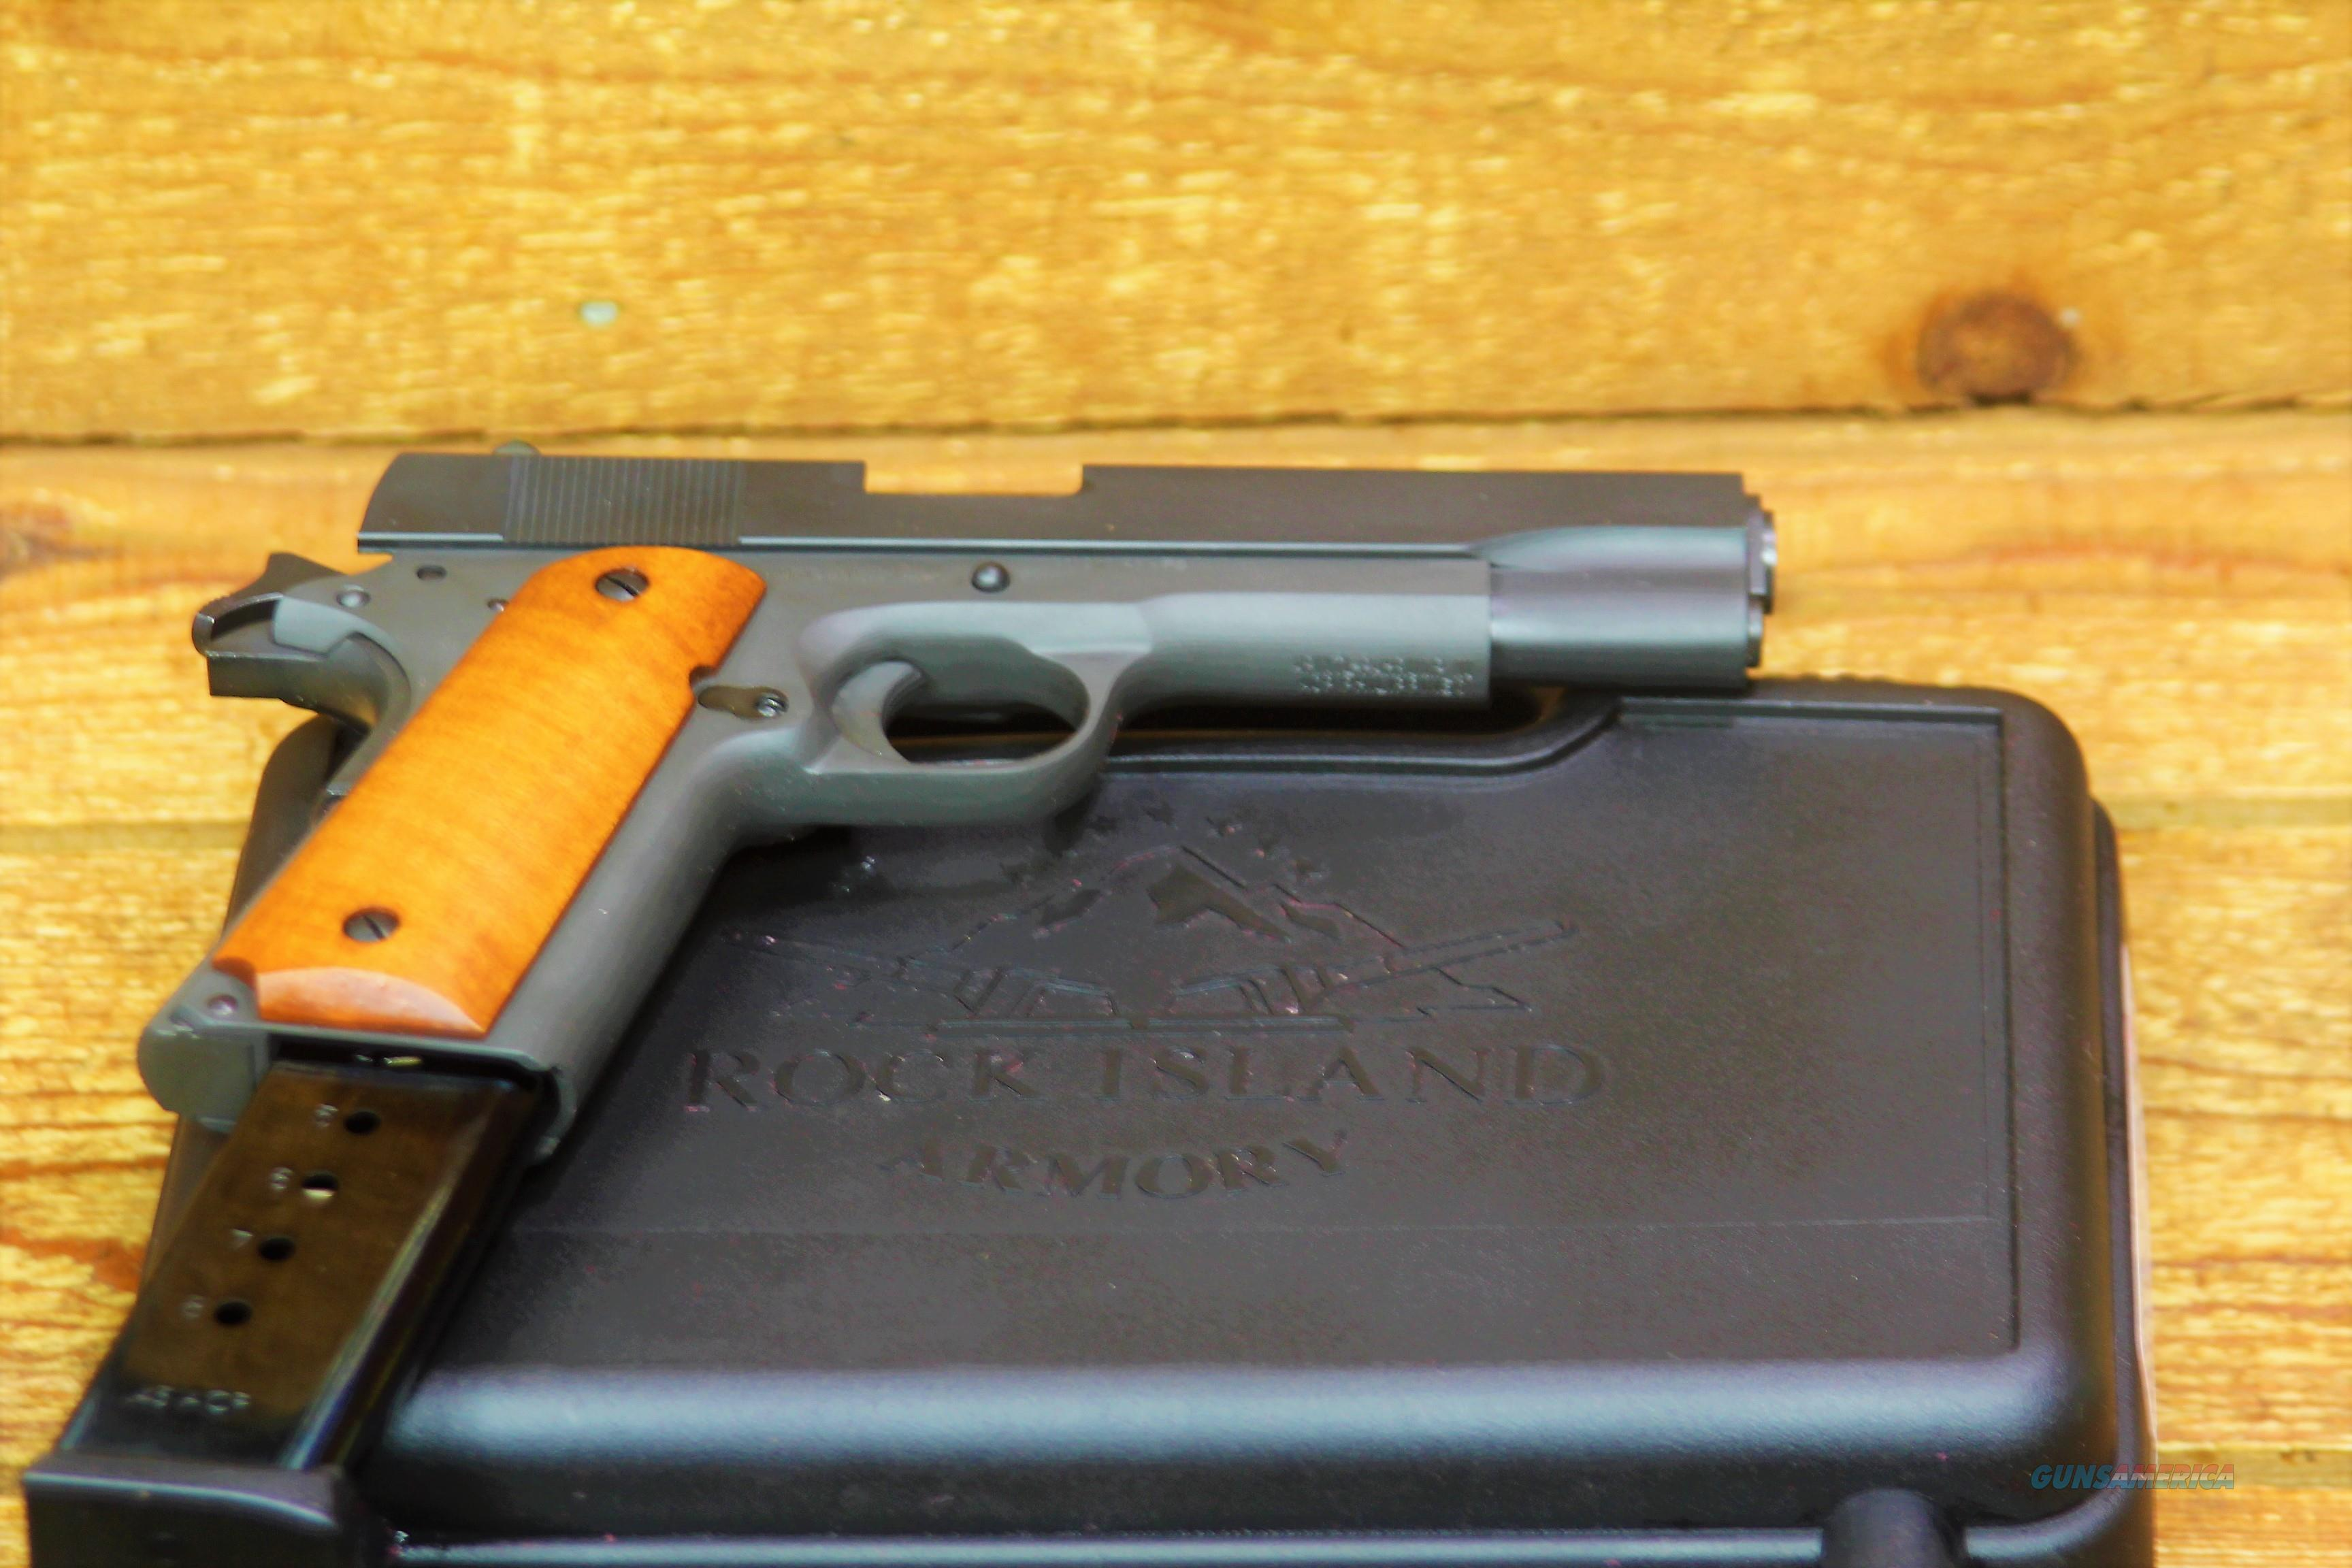 """EASY PAY $42 DOWN LAYAWAY 12 MONTHLY PAYMENTS  Armscor Concealed CARRY Rock Island Armory 5"""" Barrel 1911 Standard GI 1911-A1 Battle proven design  M1911-A1  Fixed Sights .45 ACP 5"""" Barrel 8 Rounds Smooth Wood Grips Parkerized Finish 51421   Guns > Pistols > American Tactical Imports Pistols"""